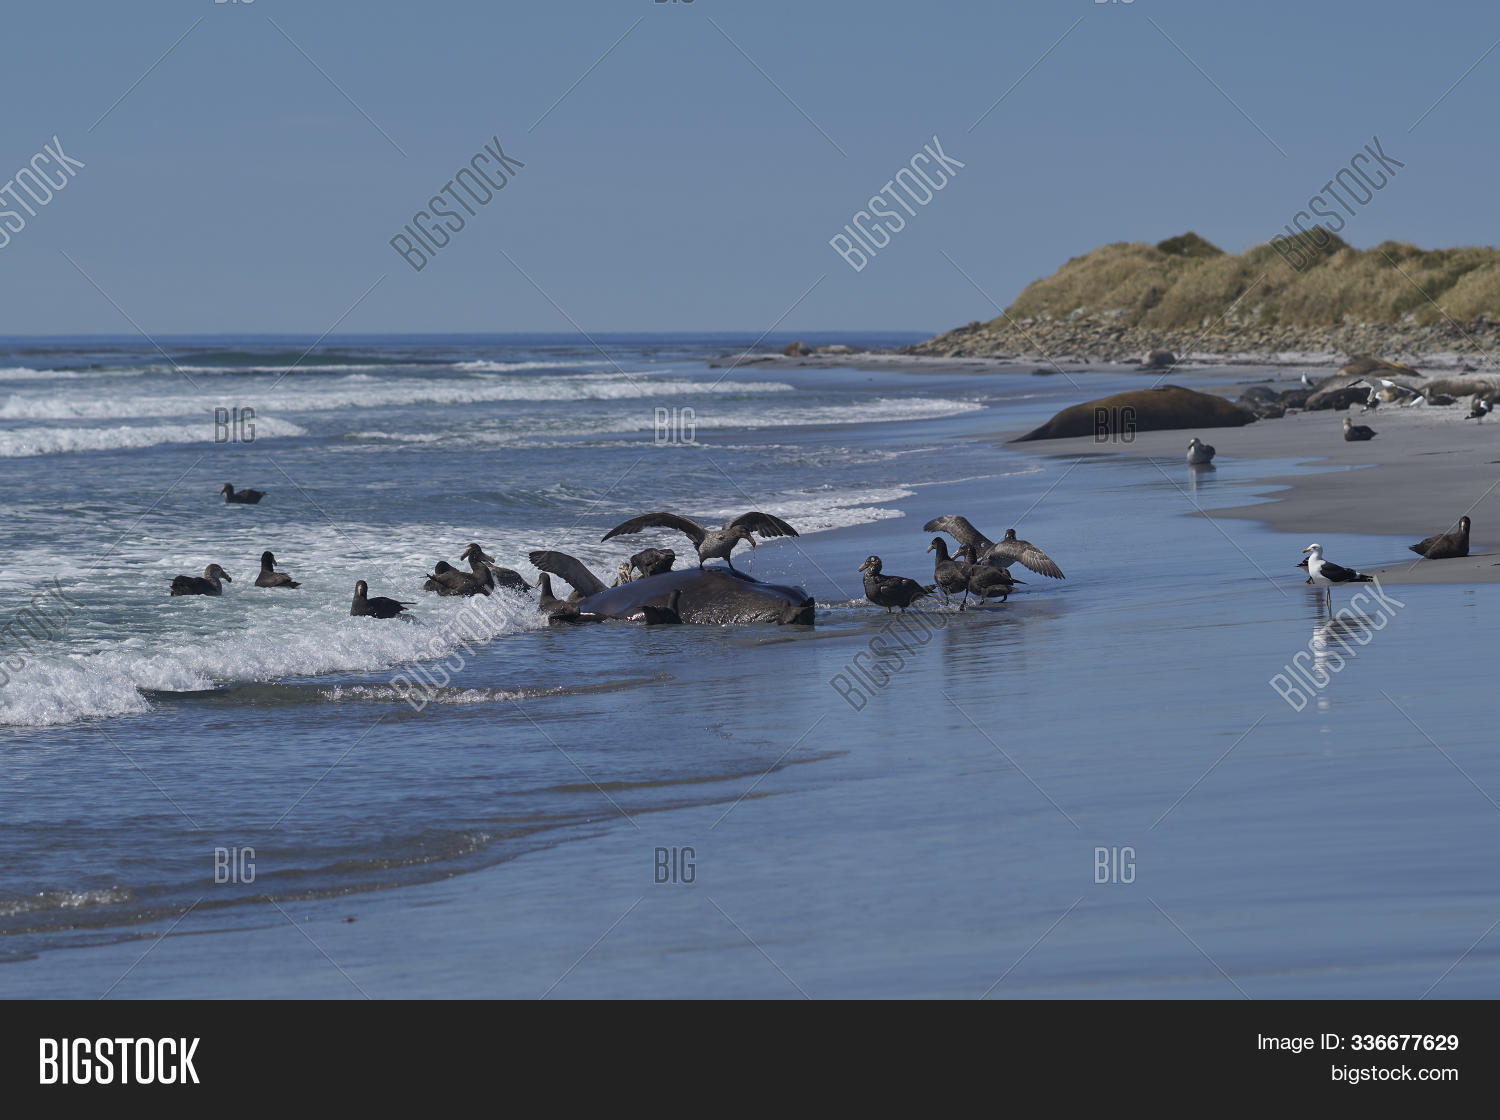 Mirounga,animal,atlantic,beach,bird,carcass,coast,coastal,corpse,dead,eat,eating,elephant,eyes,falkland,fauna,feed,feeding,giant,great,halli,head,island,leonina,macronectes,male,mammal,northern,nose,petrel,proboscis,sand,scavenger,seal,sealion,south,southern,wild,wildlife